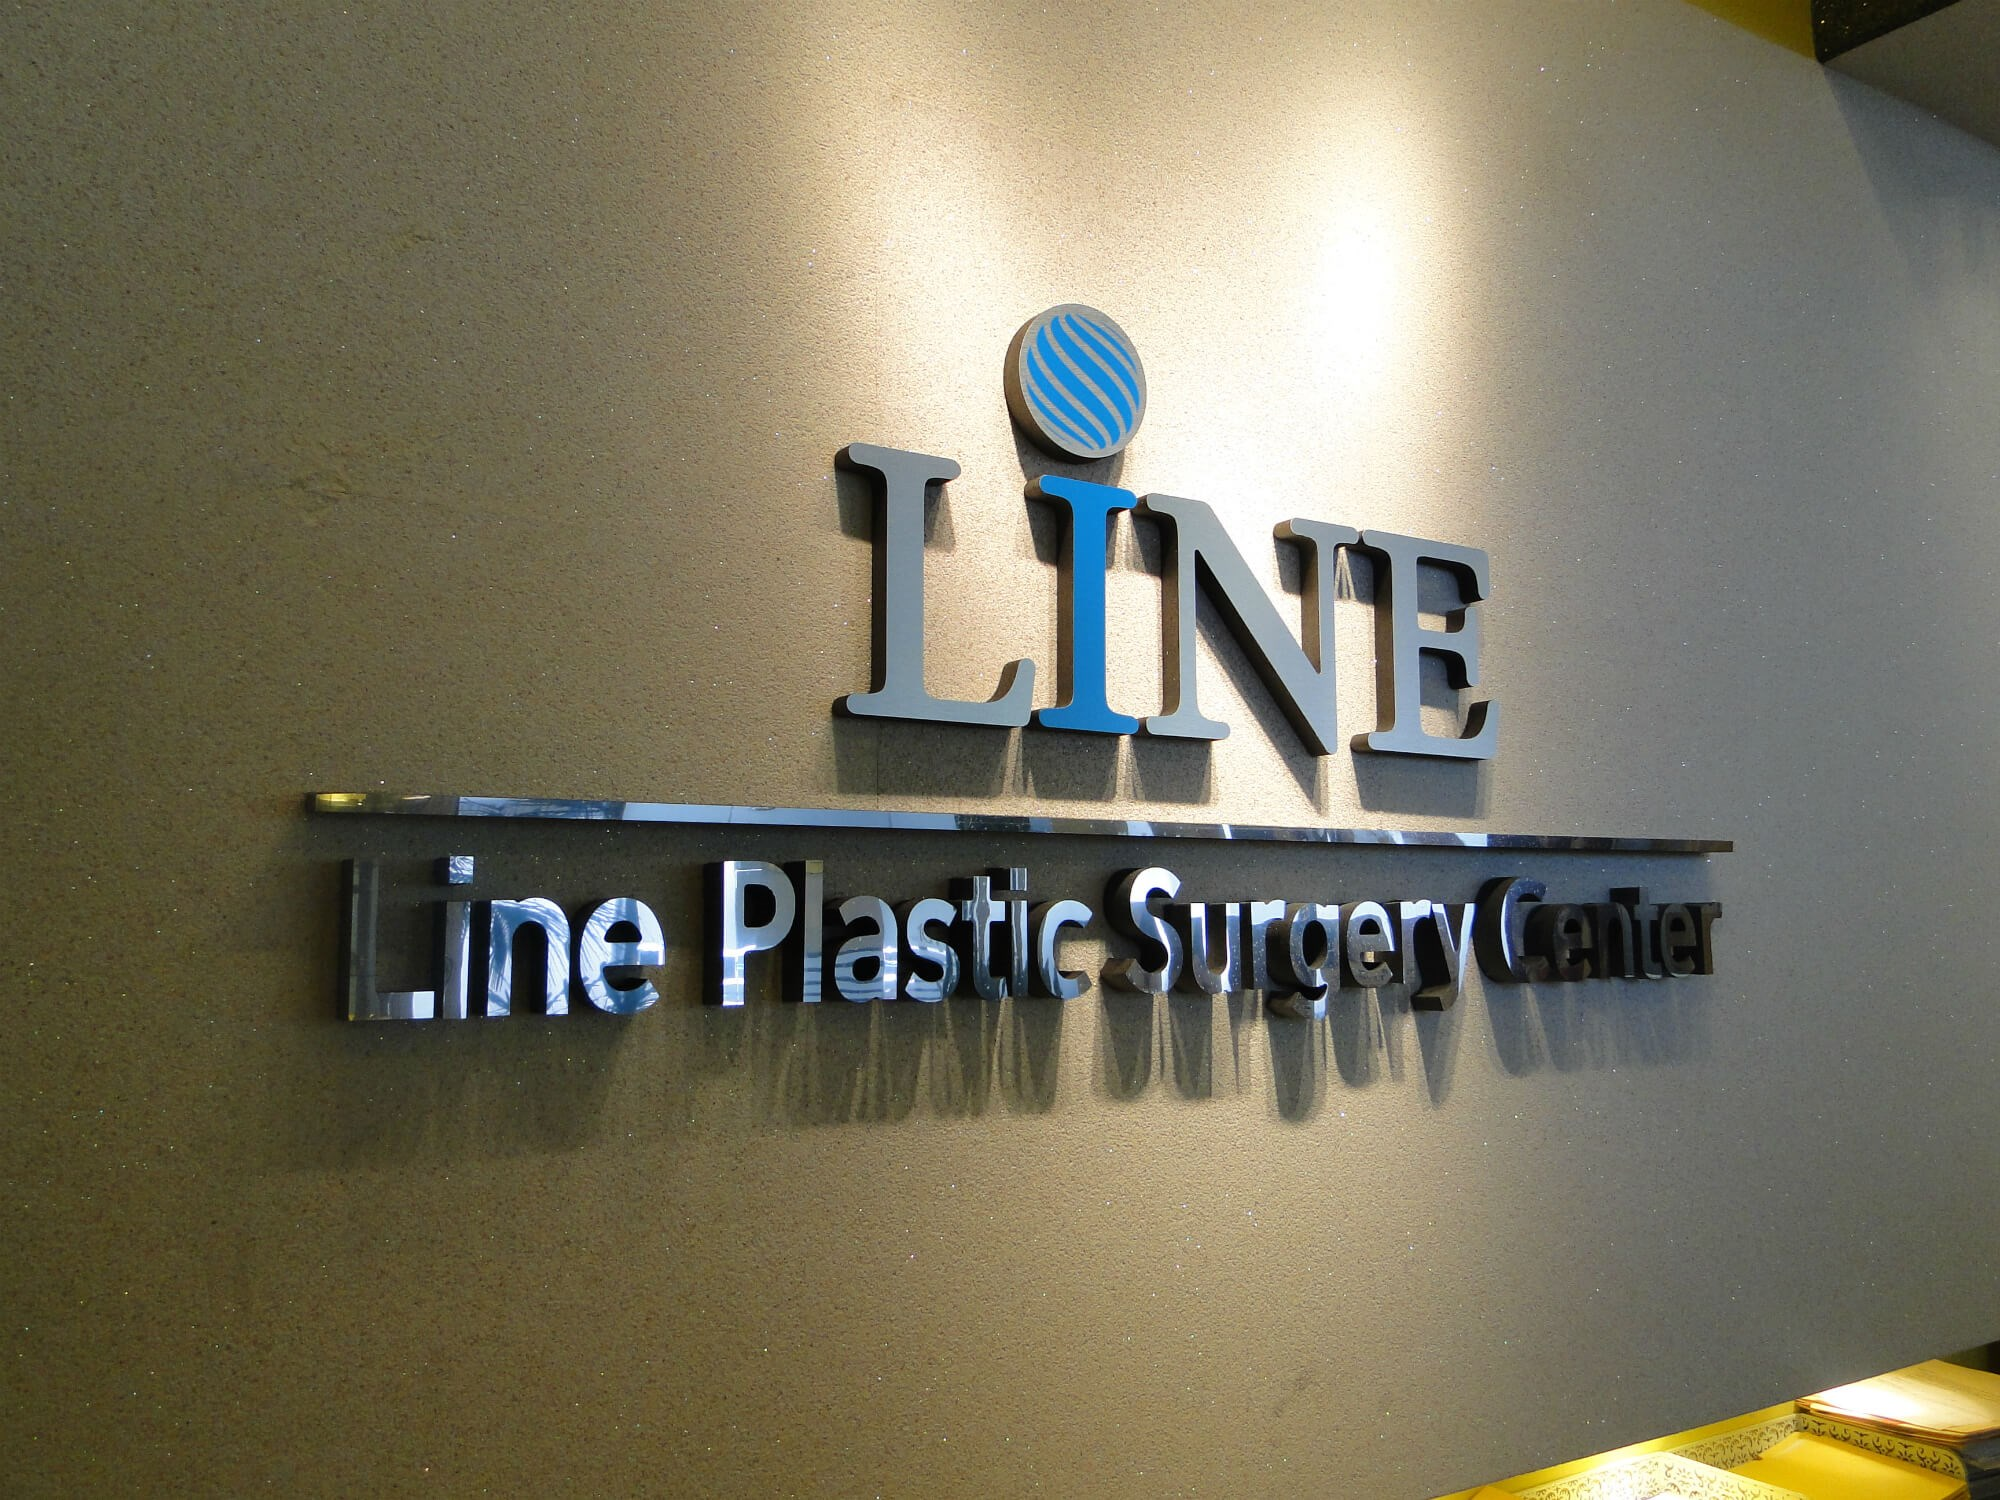 The Line Plastic Surgery